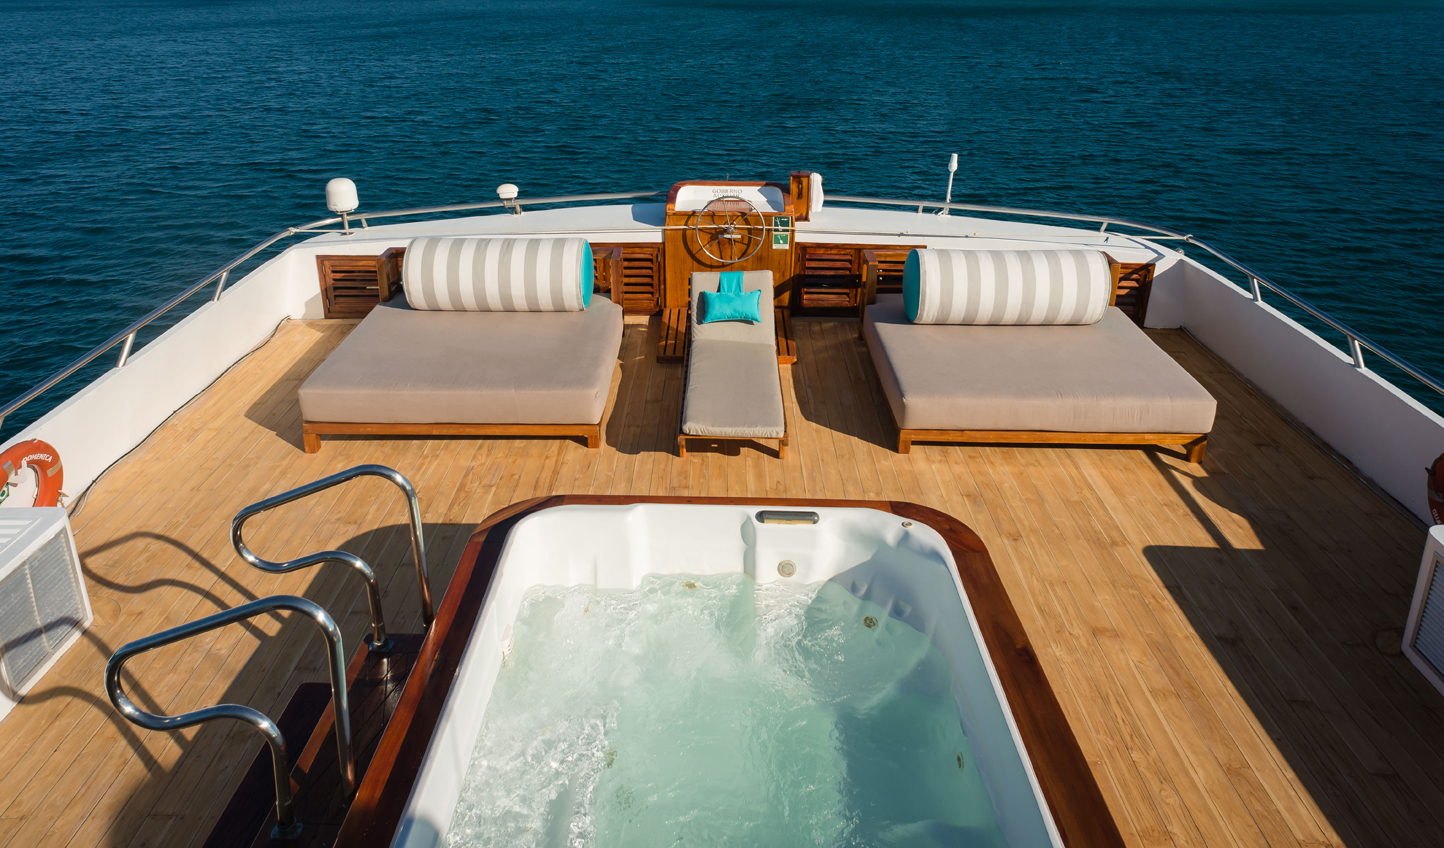 Take in the unforgettable views from your yacht's jacuzzi